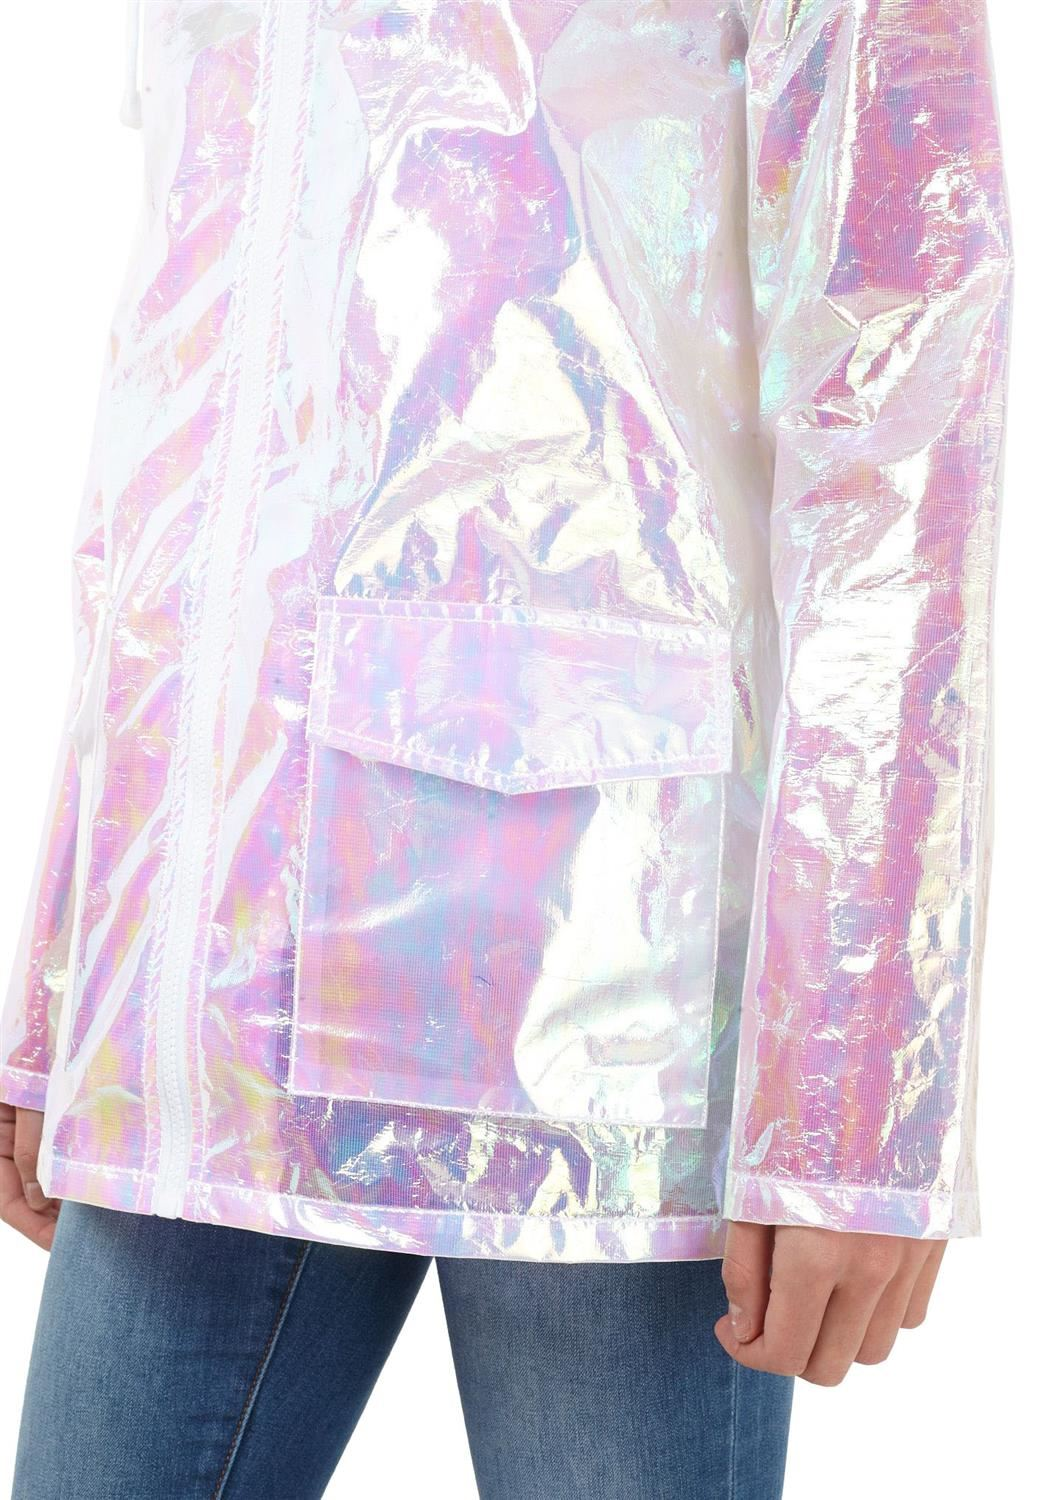 Womens-Waterproof-Holographic-Zipped-Neon-Festival-Mac-Jacket-Parka-Raincoat thumbnail 8